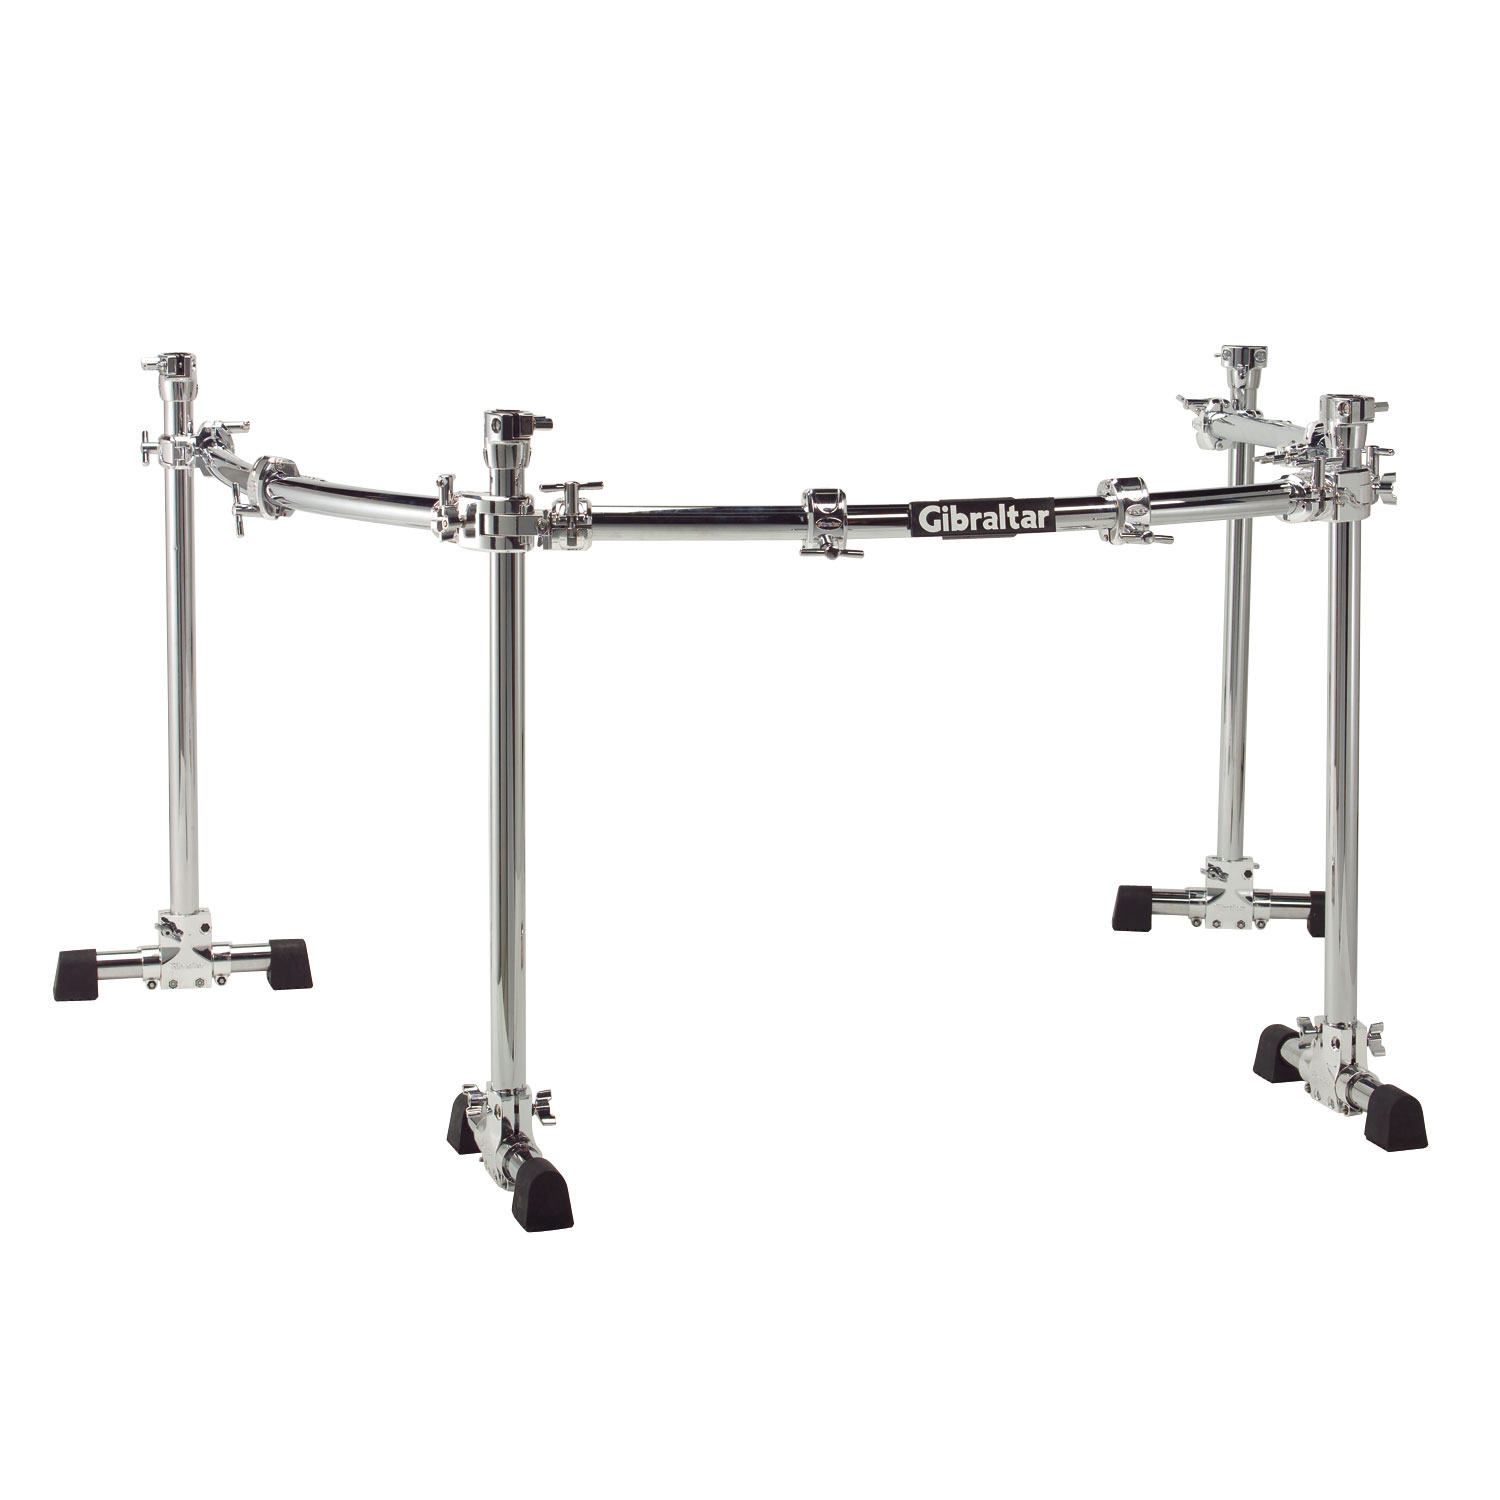 Gibraltar GCS-450C Road Series 4-Post Curved Rack